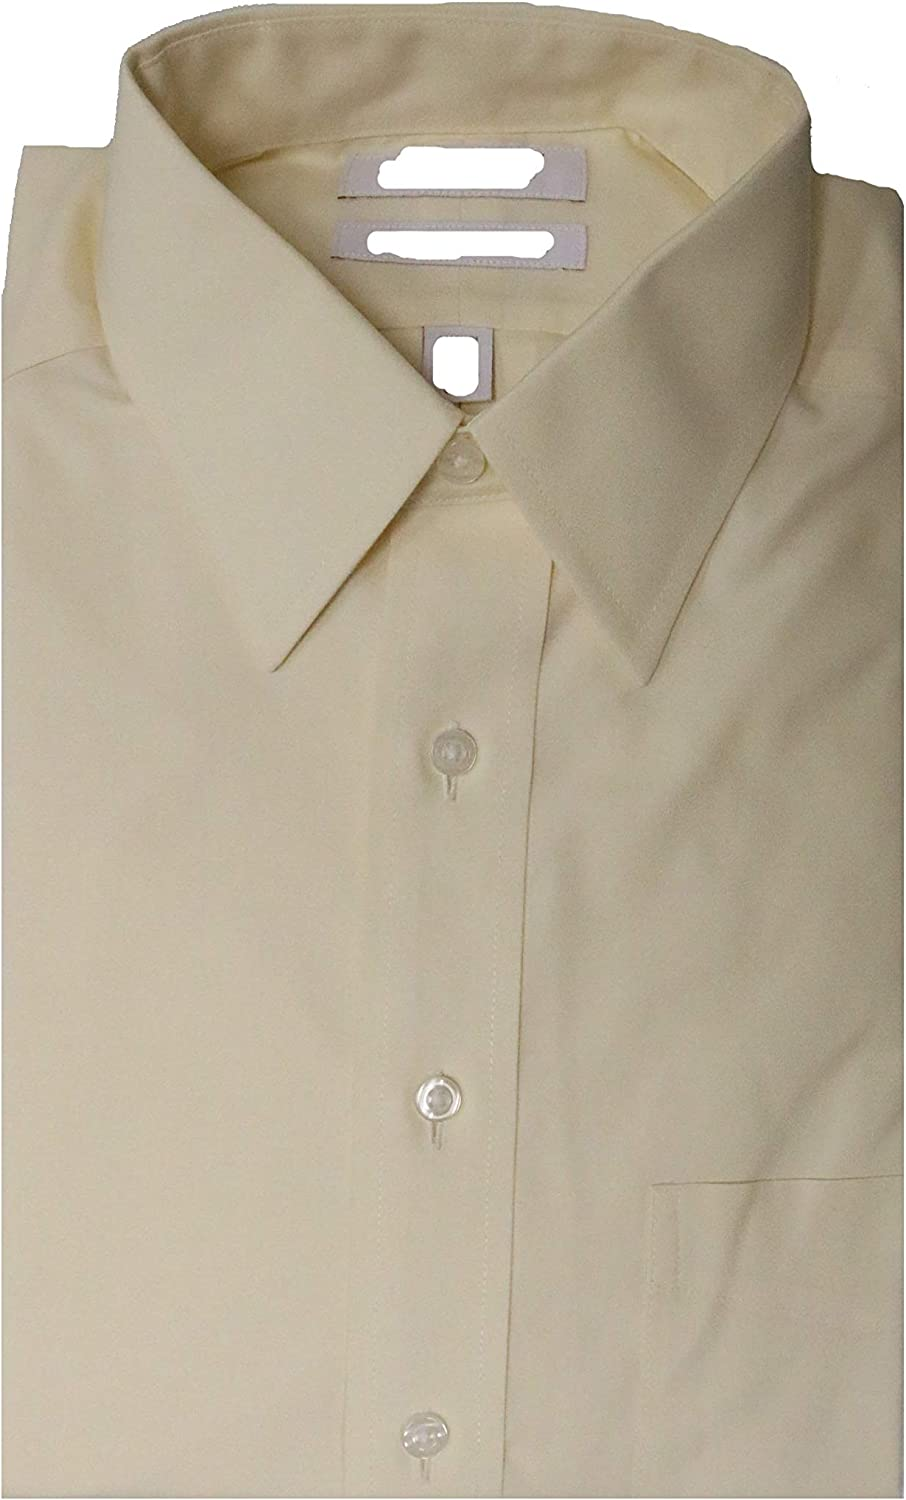 Gold Label Roundtree & Yorke Non Iron Fitted Classic Fit Point Collar Solid Dress Shirt Y35DG104 Ecru